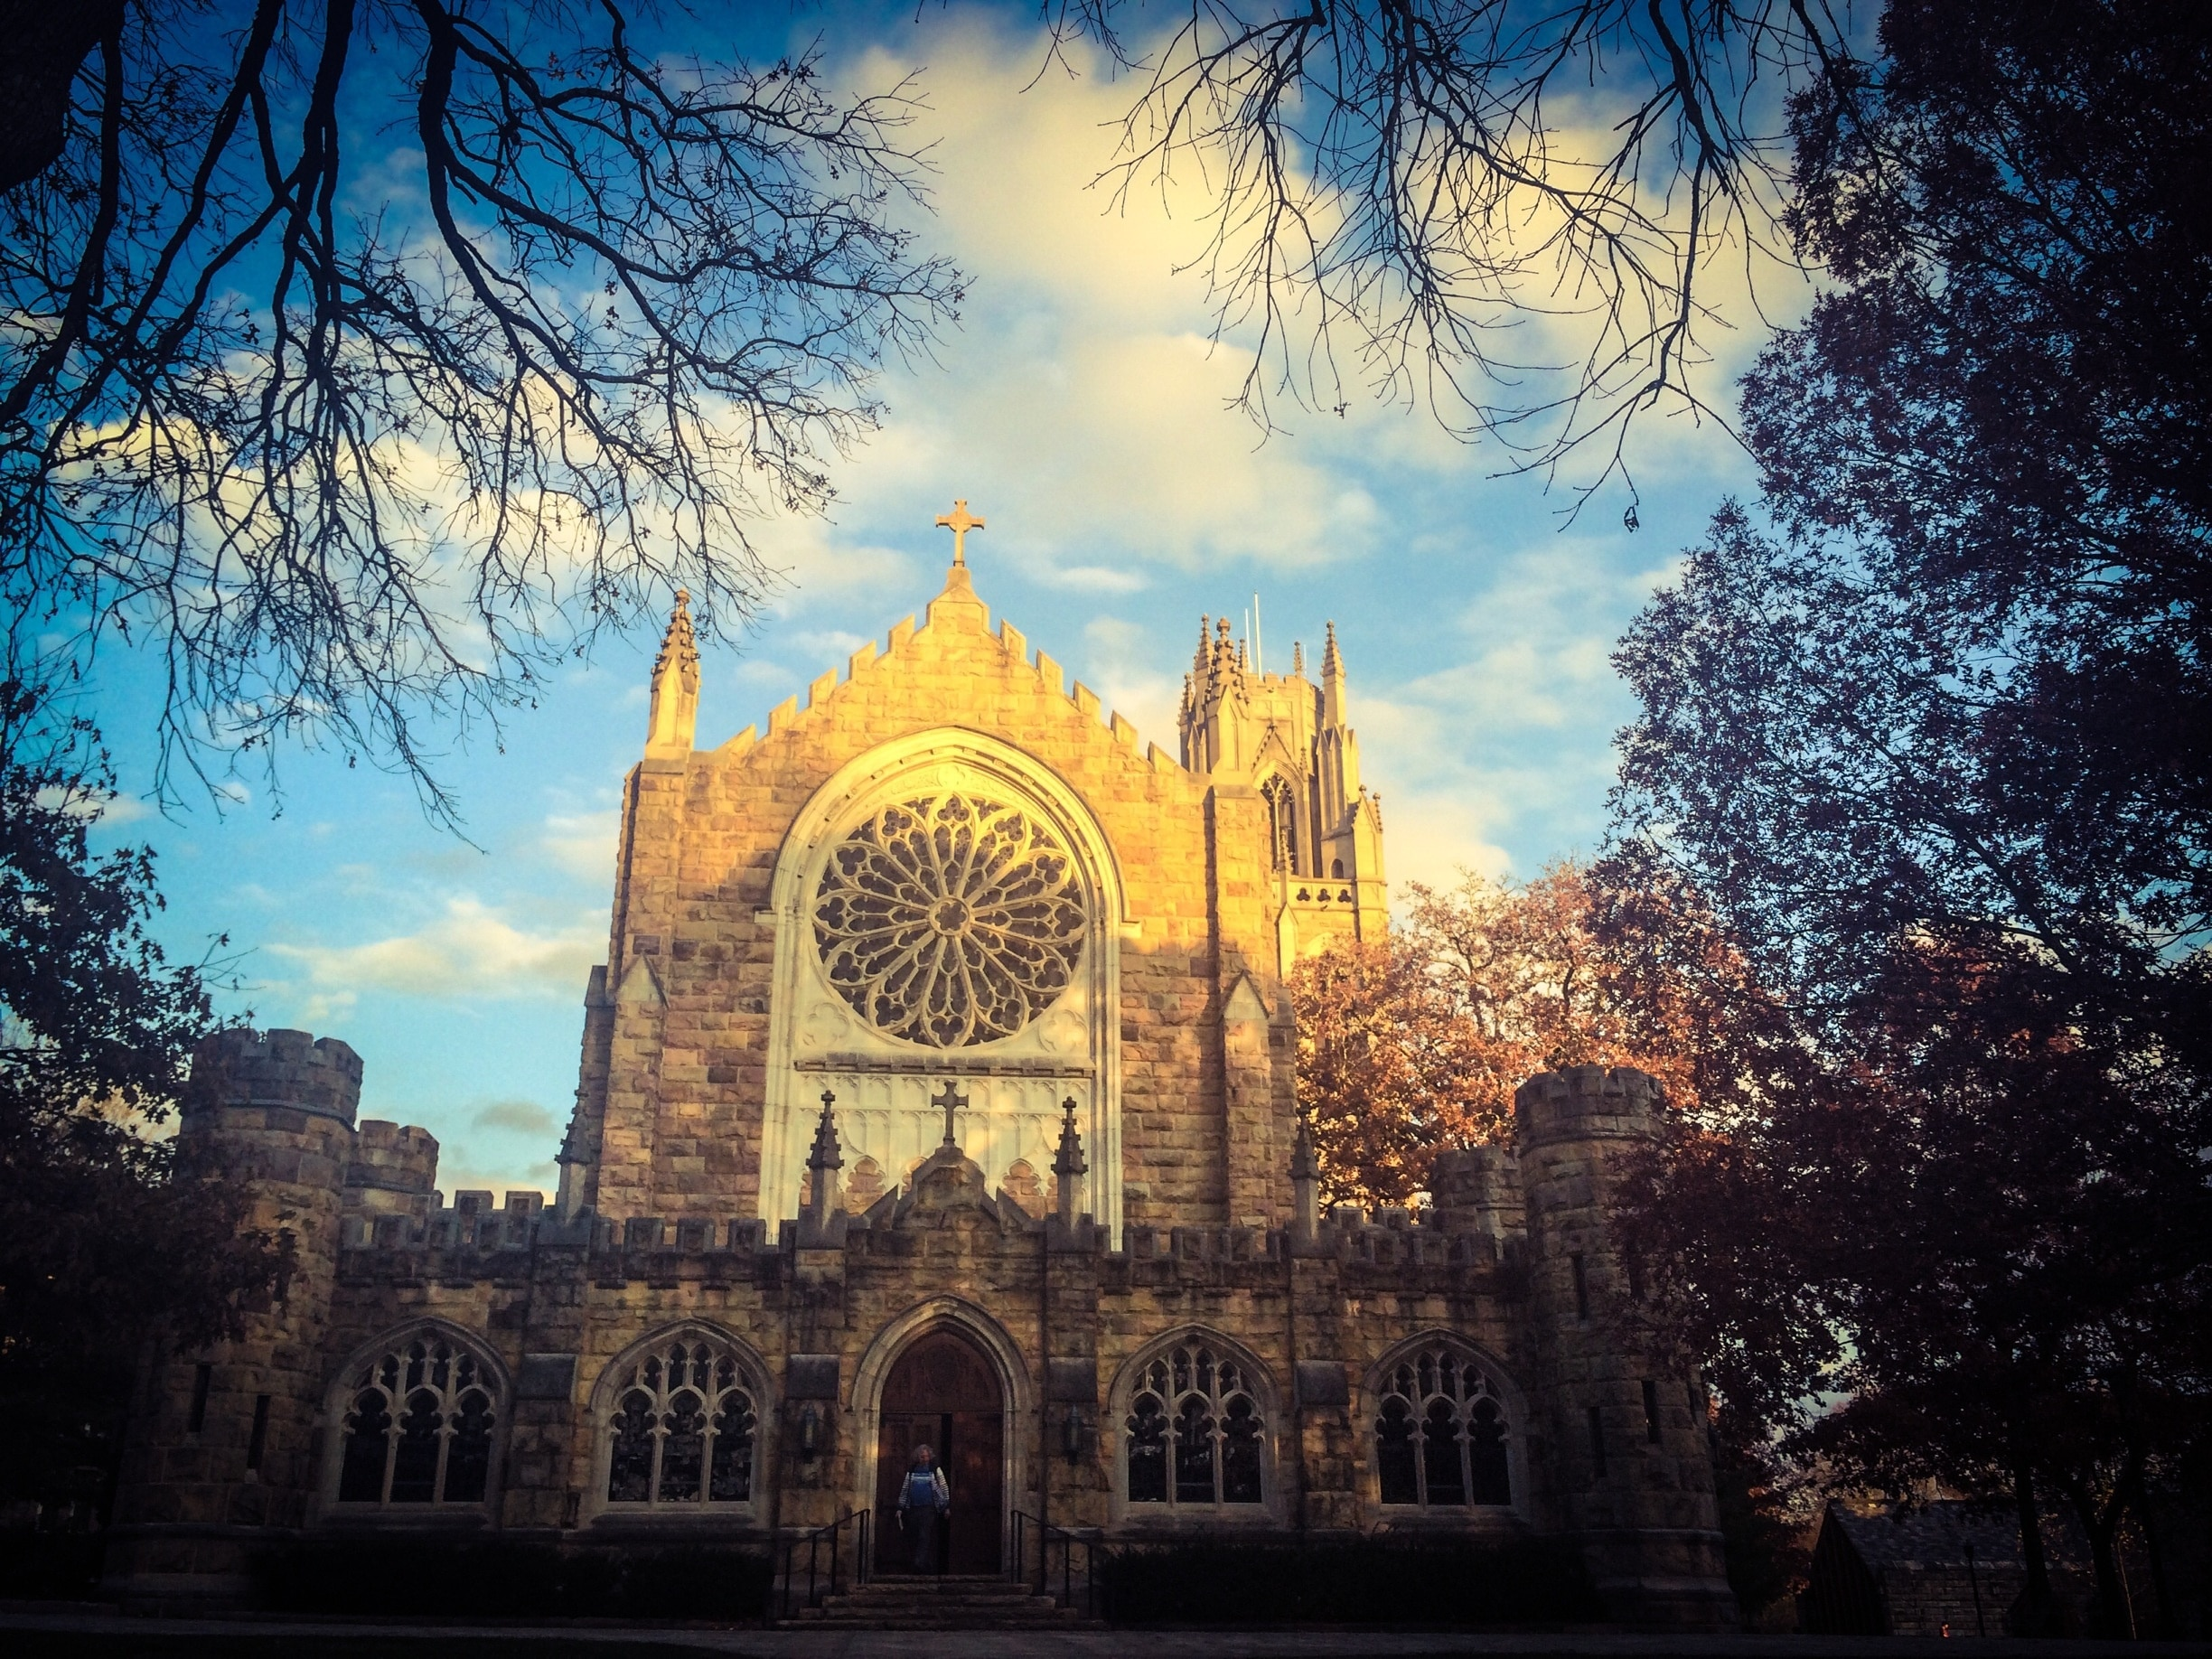 University of the South, Sewanee, Tennessee, United States of America